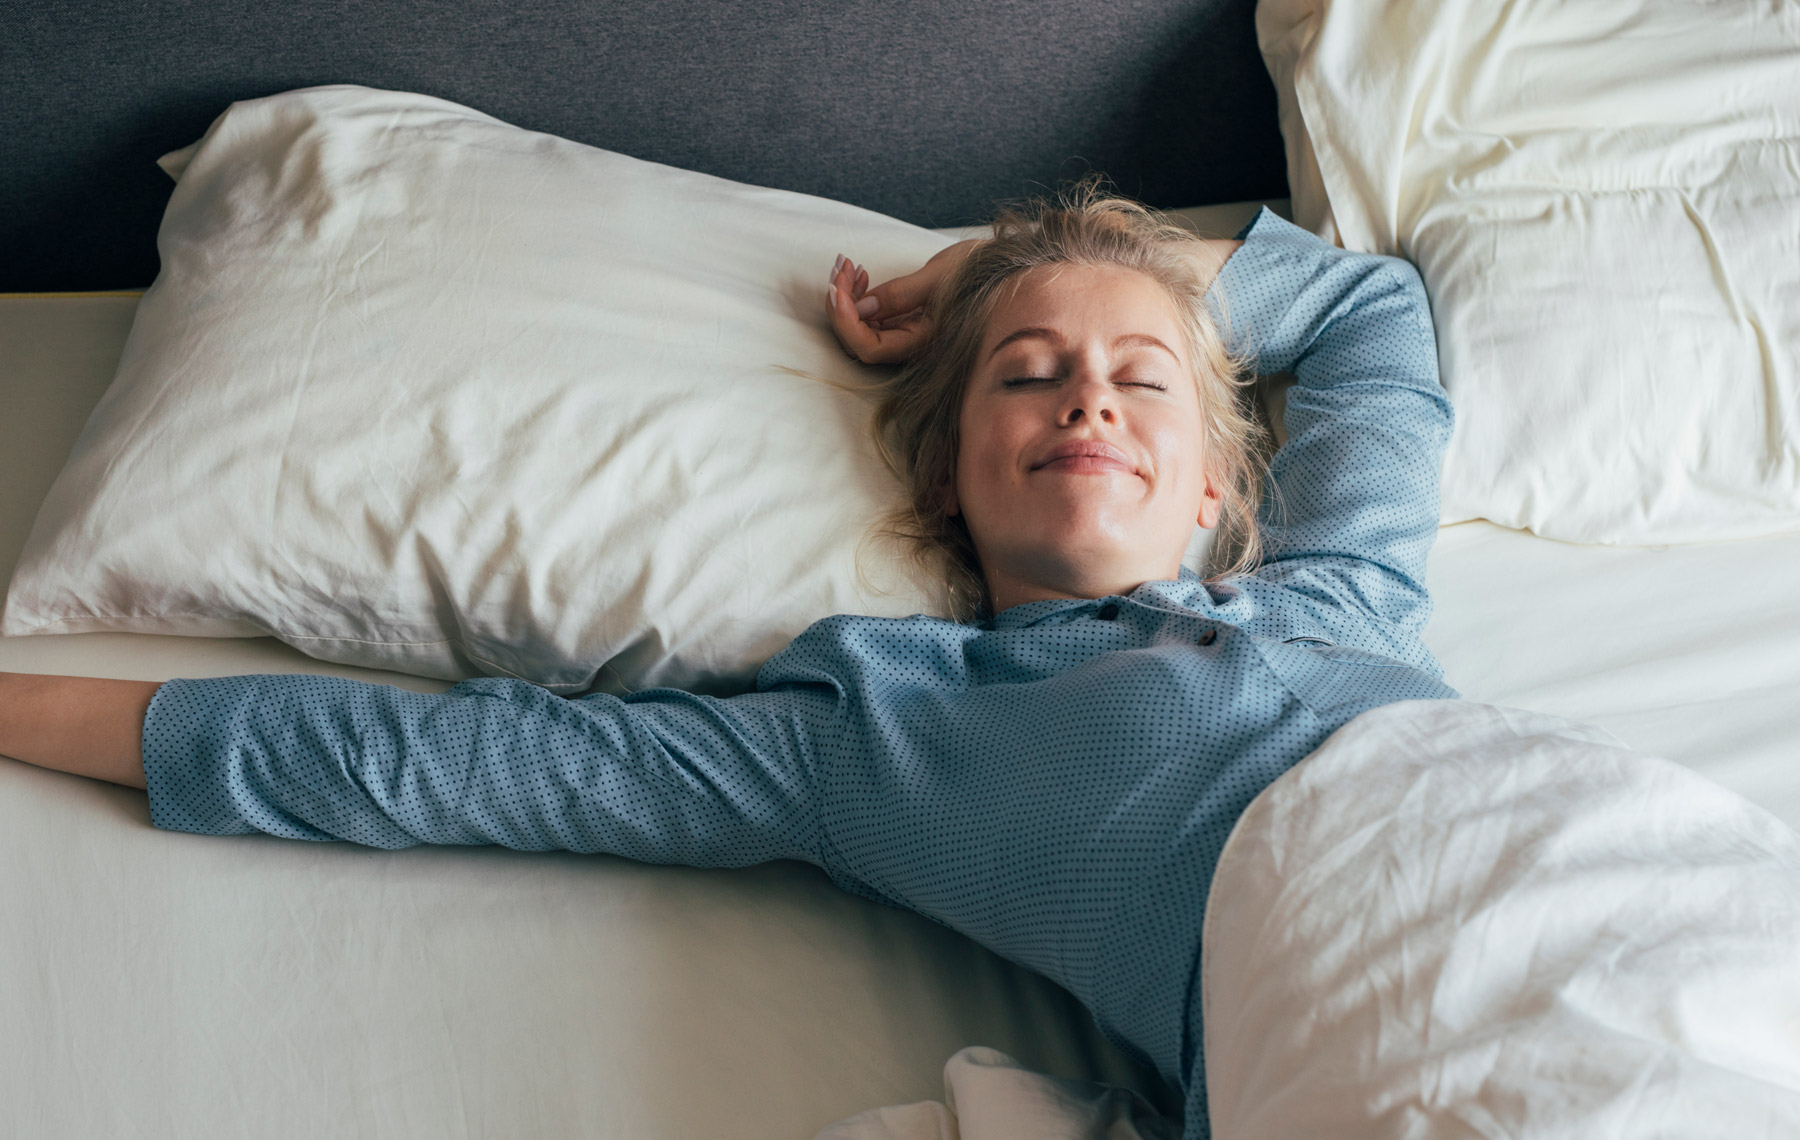 happy blonde woman in pyjamas stretches in bed after waking up in the mornin-early bird vs night owl